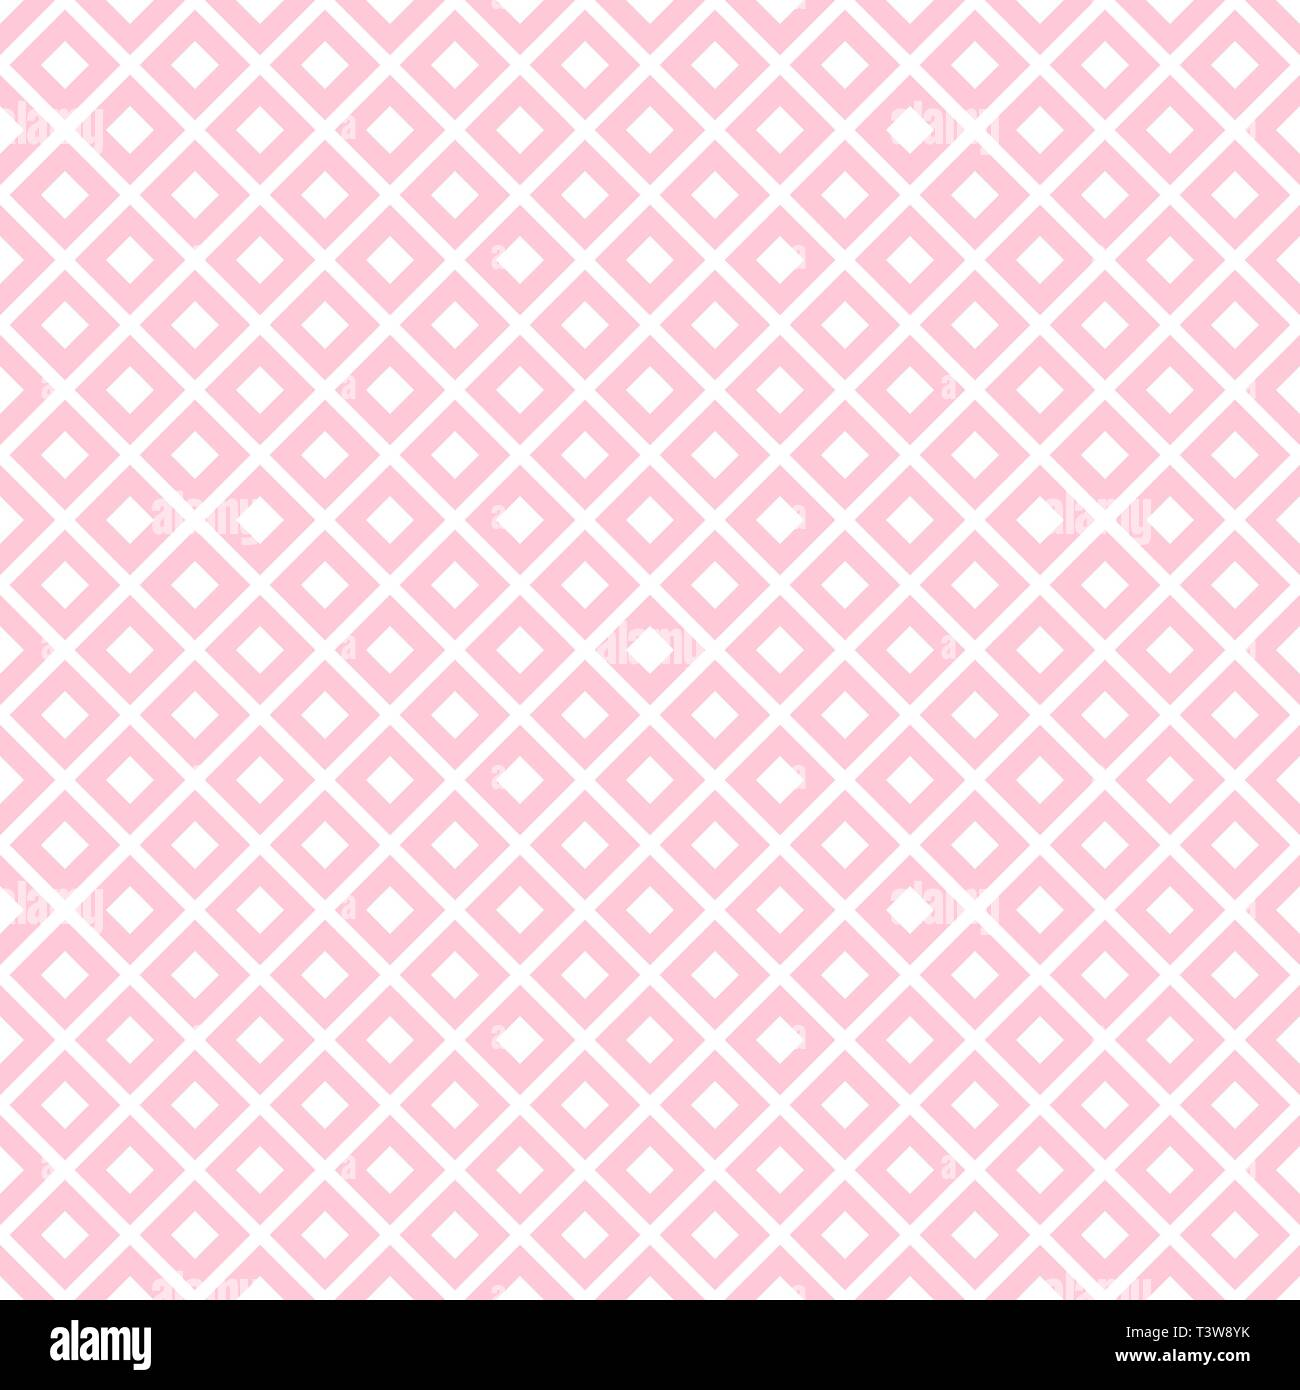 It is an image of Scrapbook Paper Printable within floral